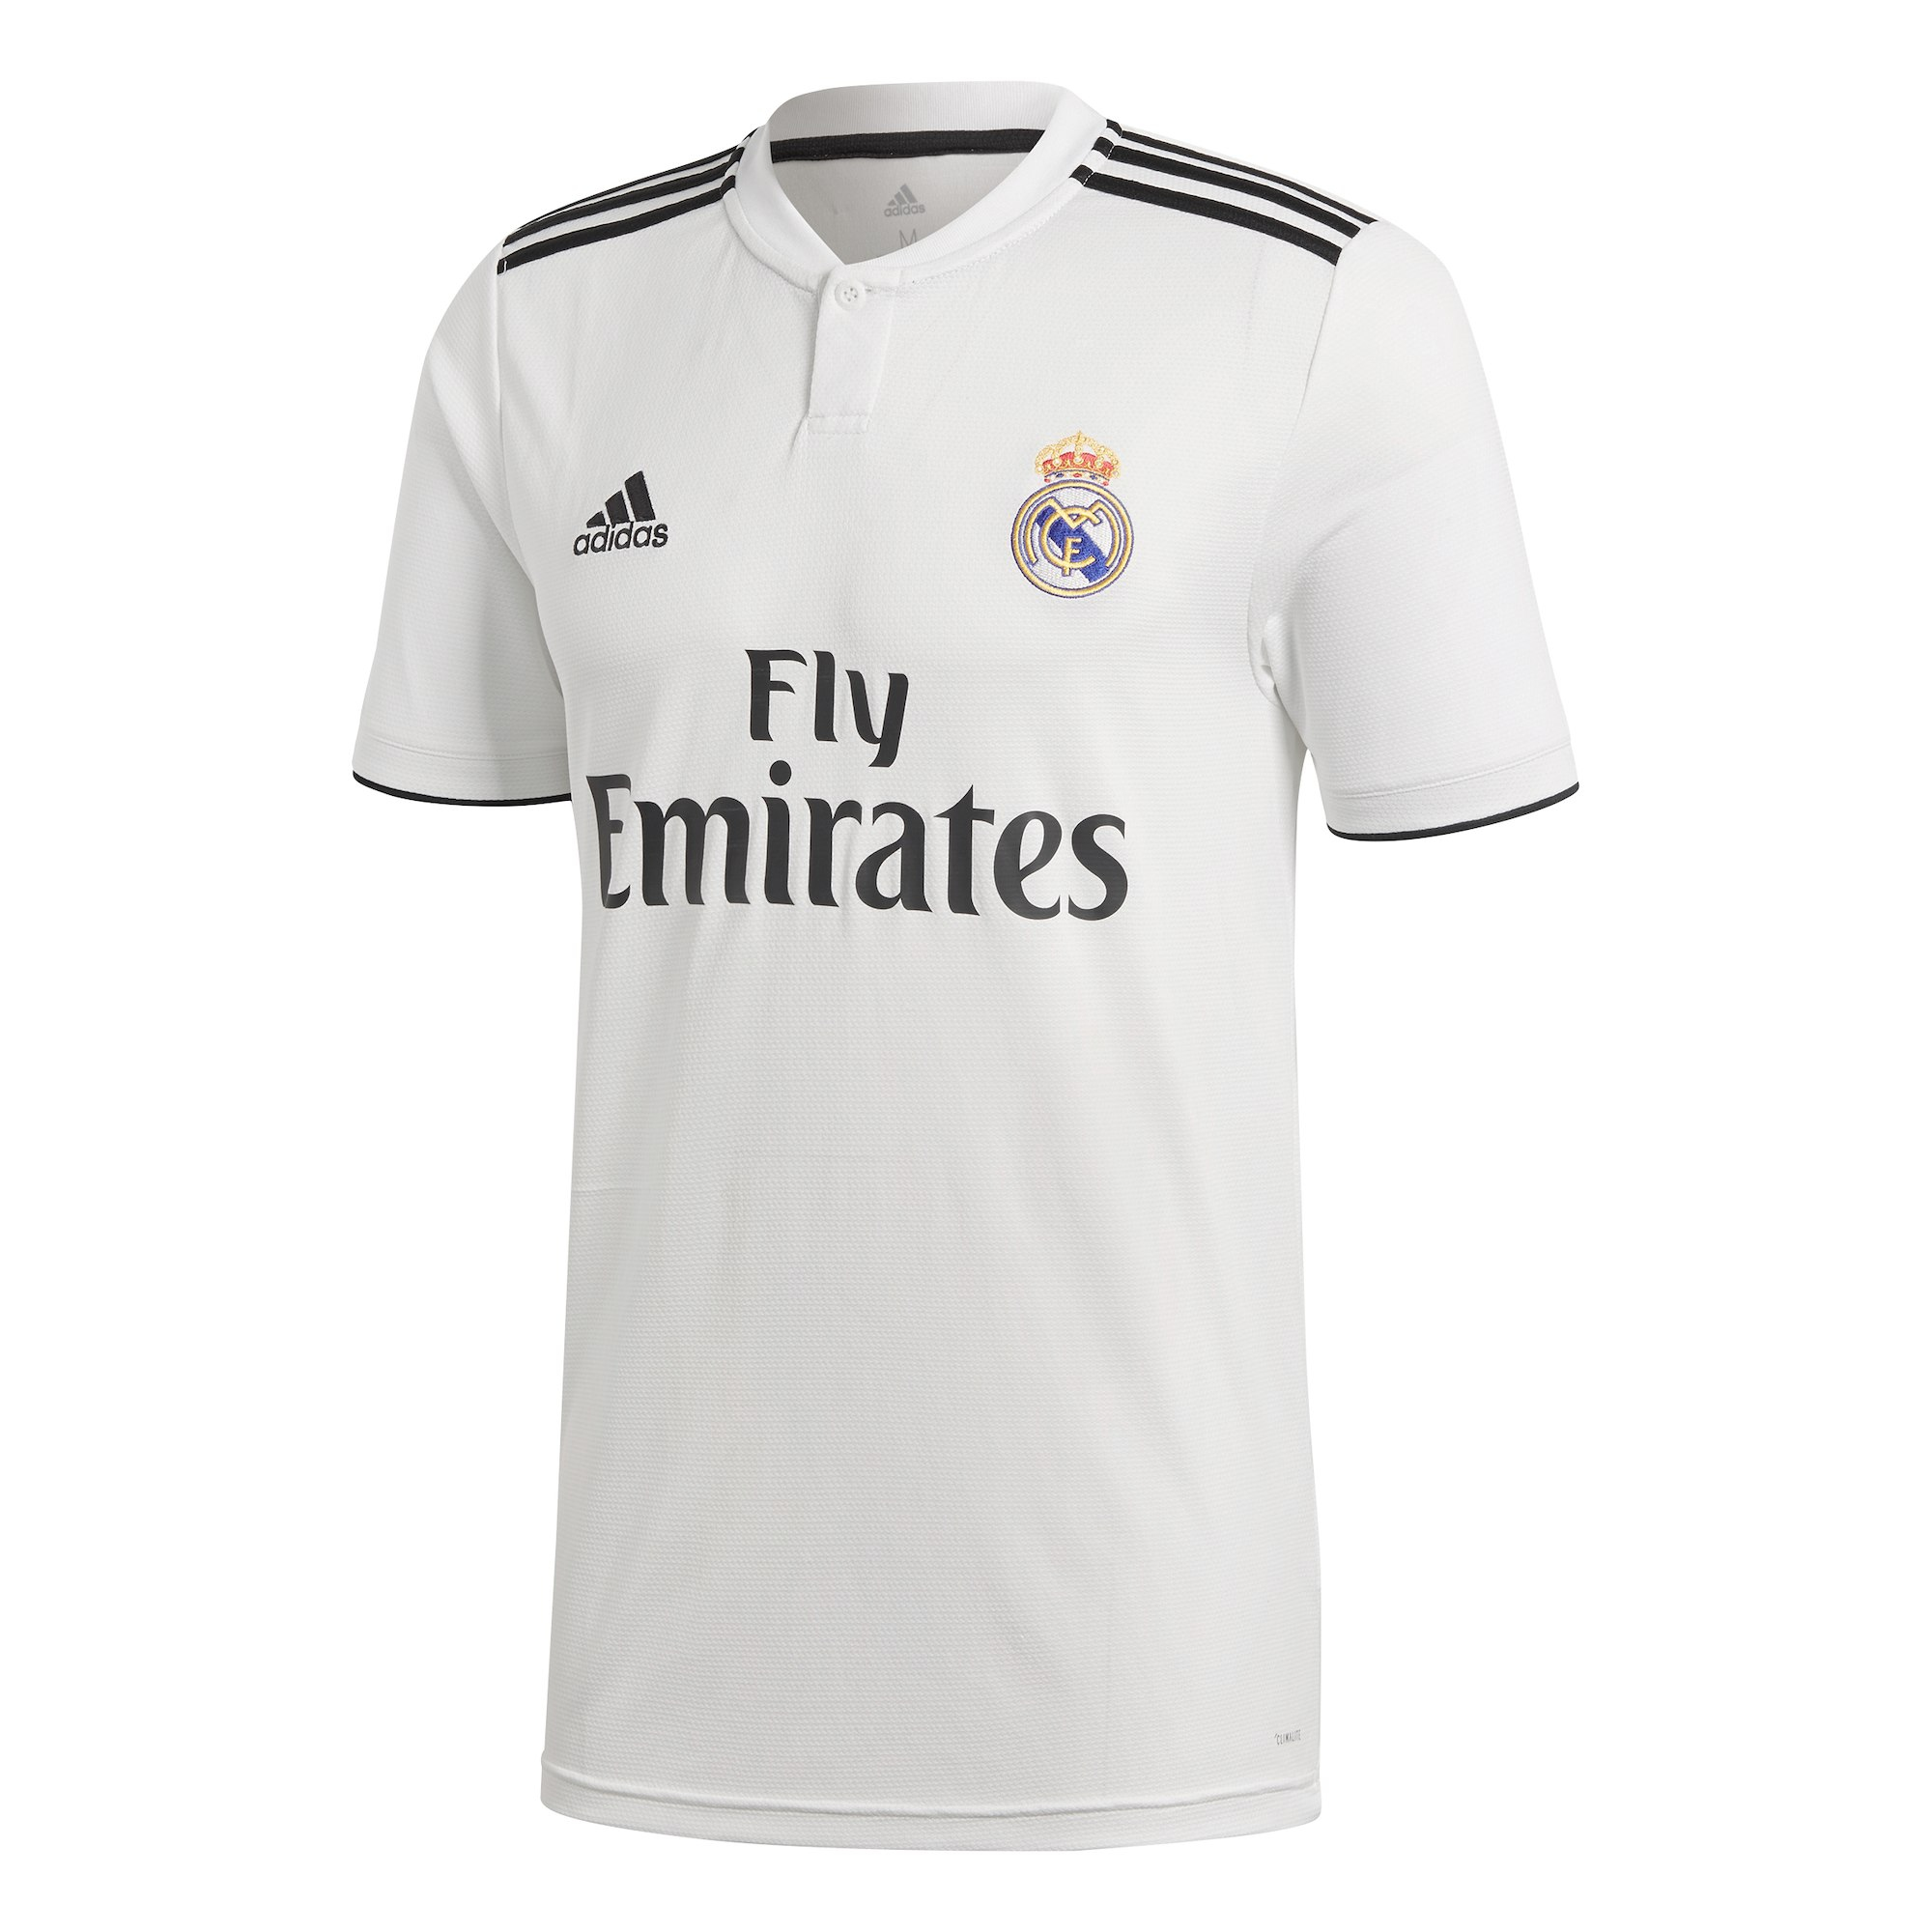 2197dff9860 Jersey - Real Madrid Home Jersey 2018 2019 Football Jersey Online Malaysia